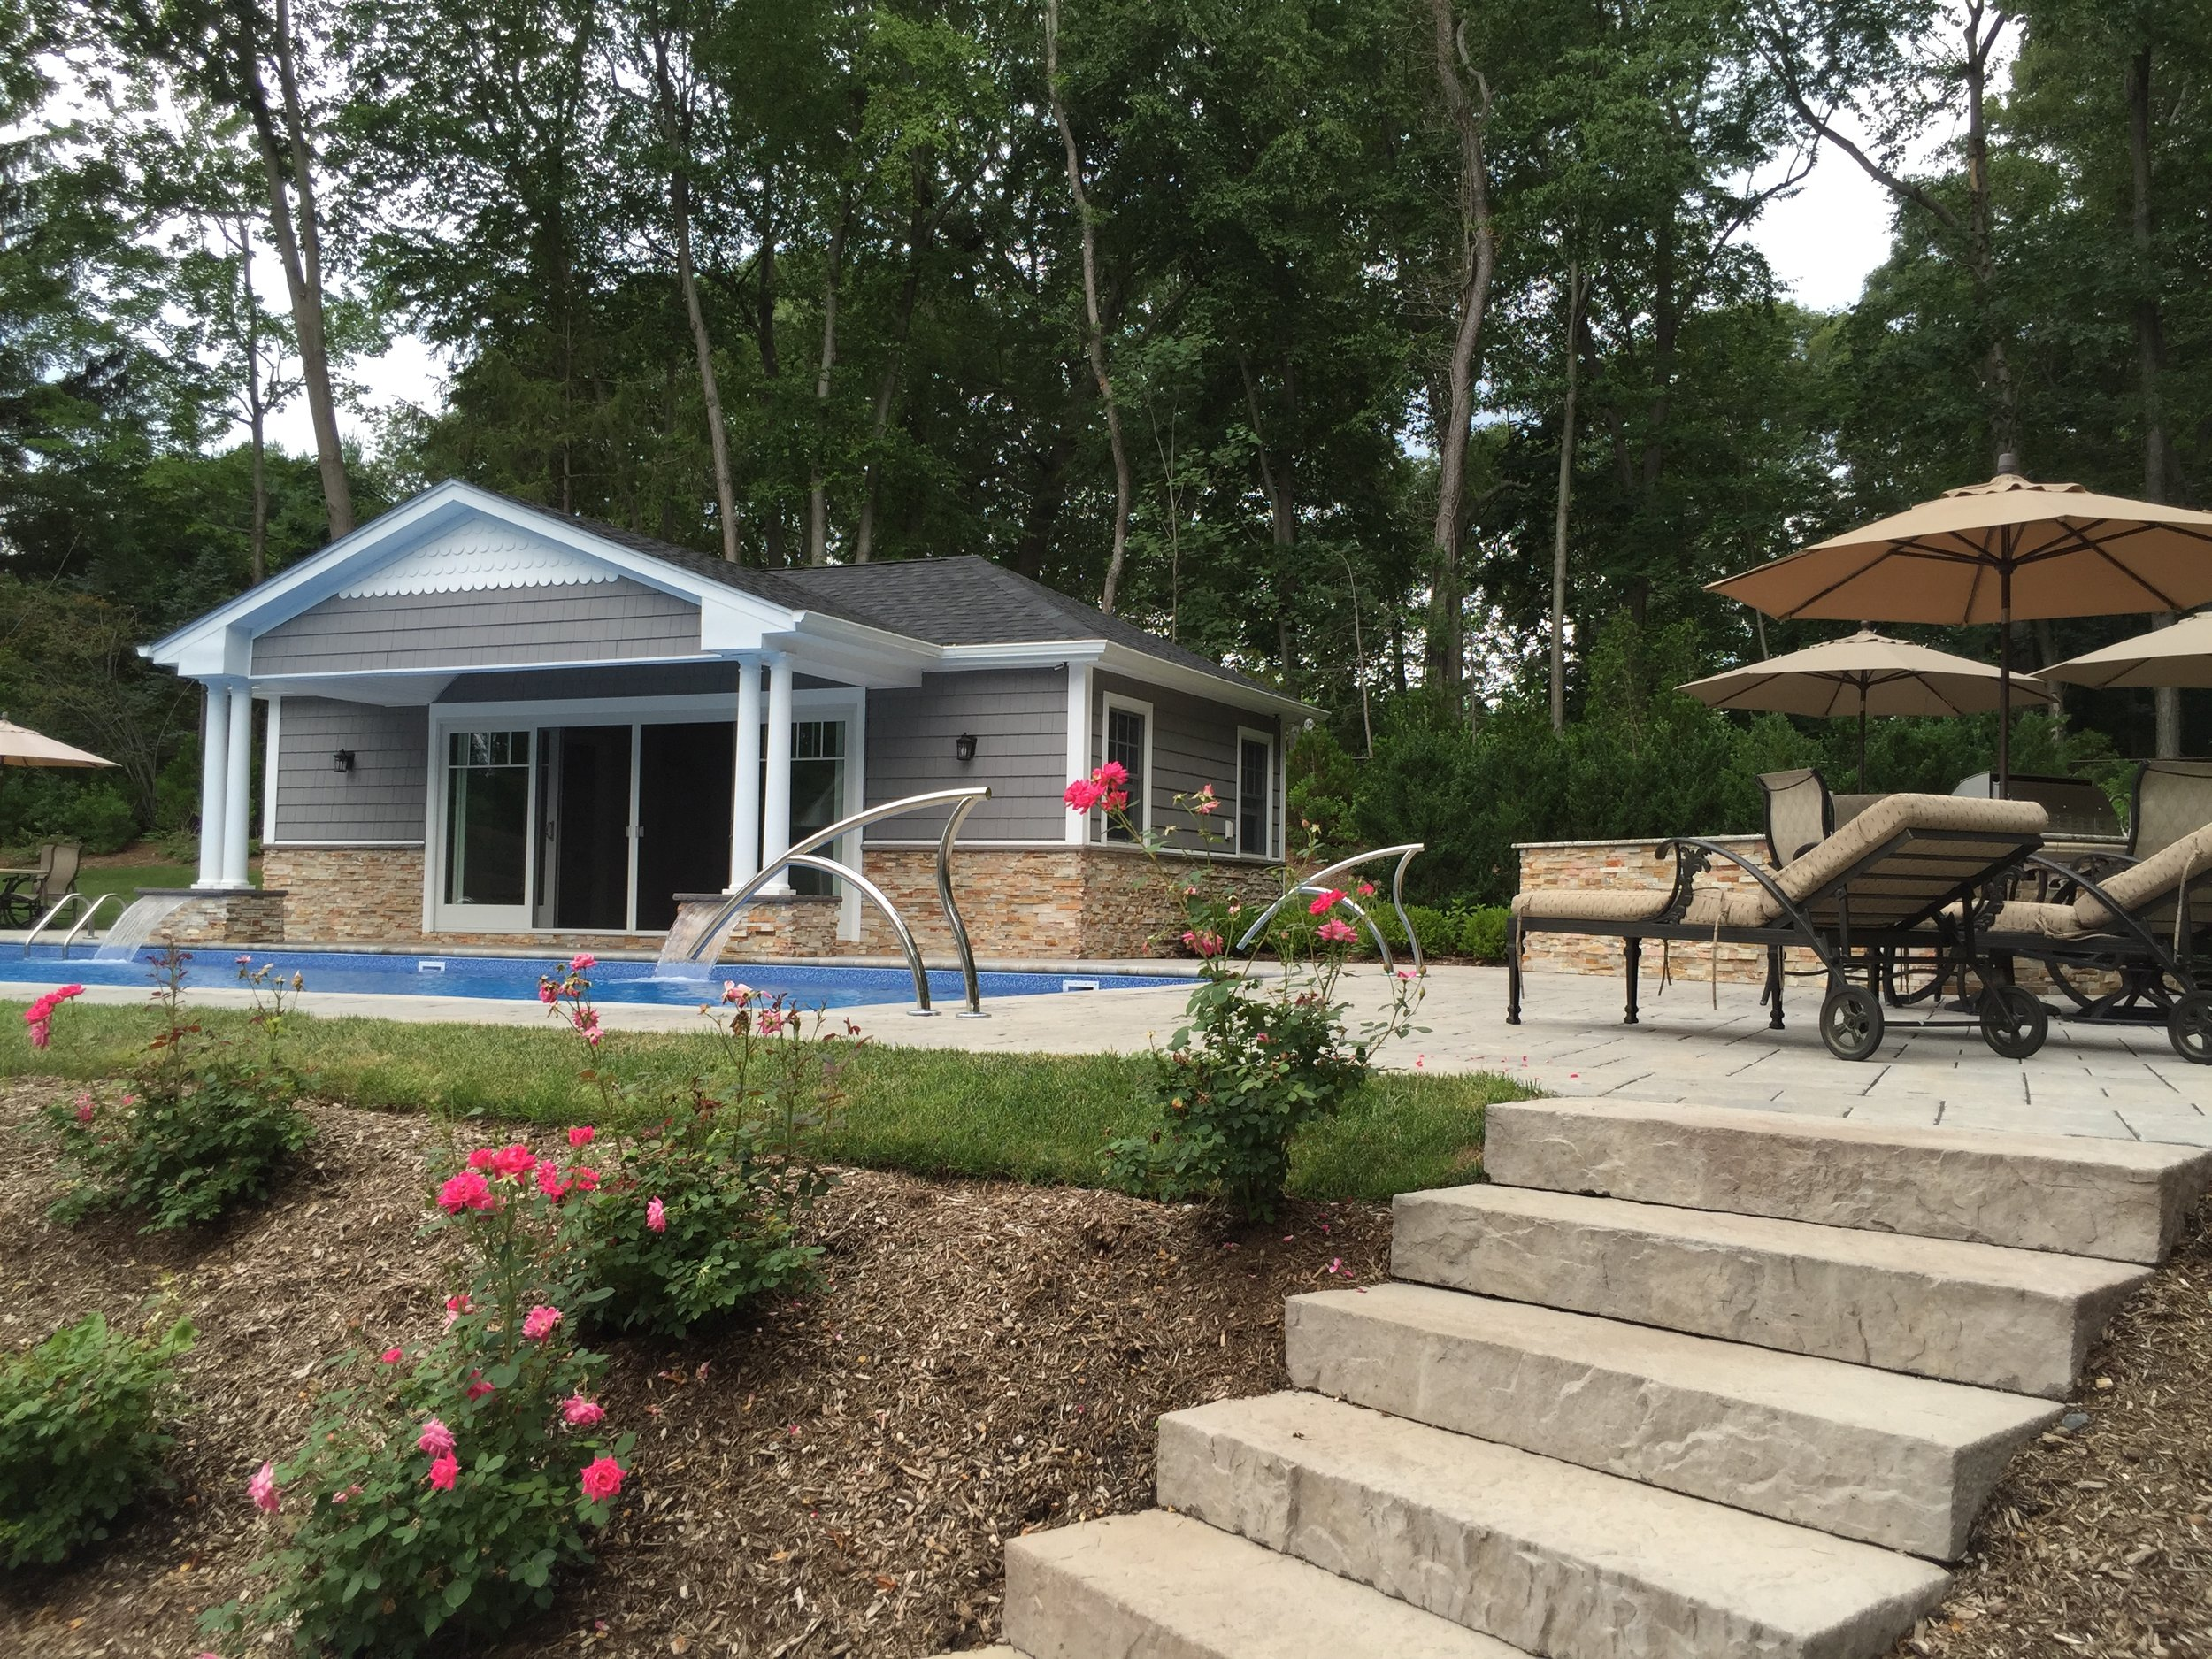 Professional pool landscapedesign company in Long Island, NY